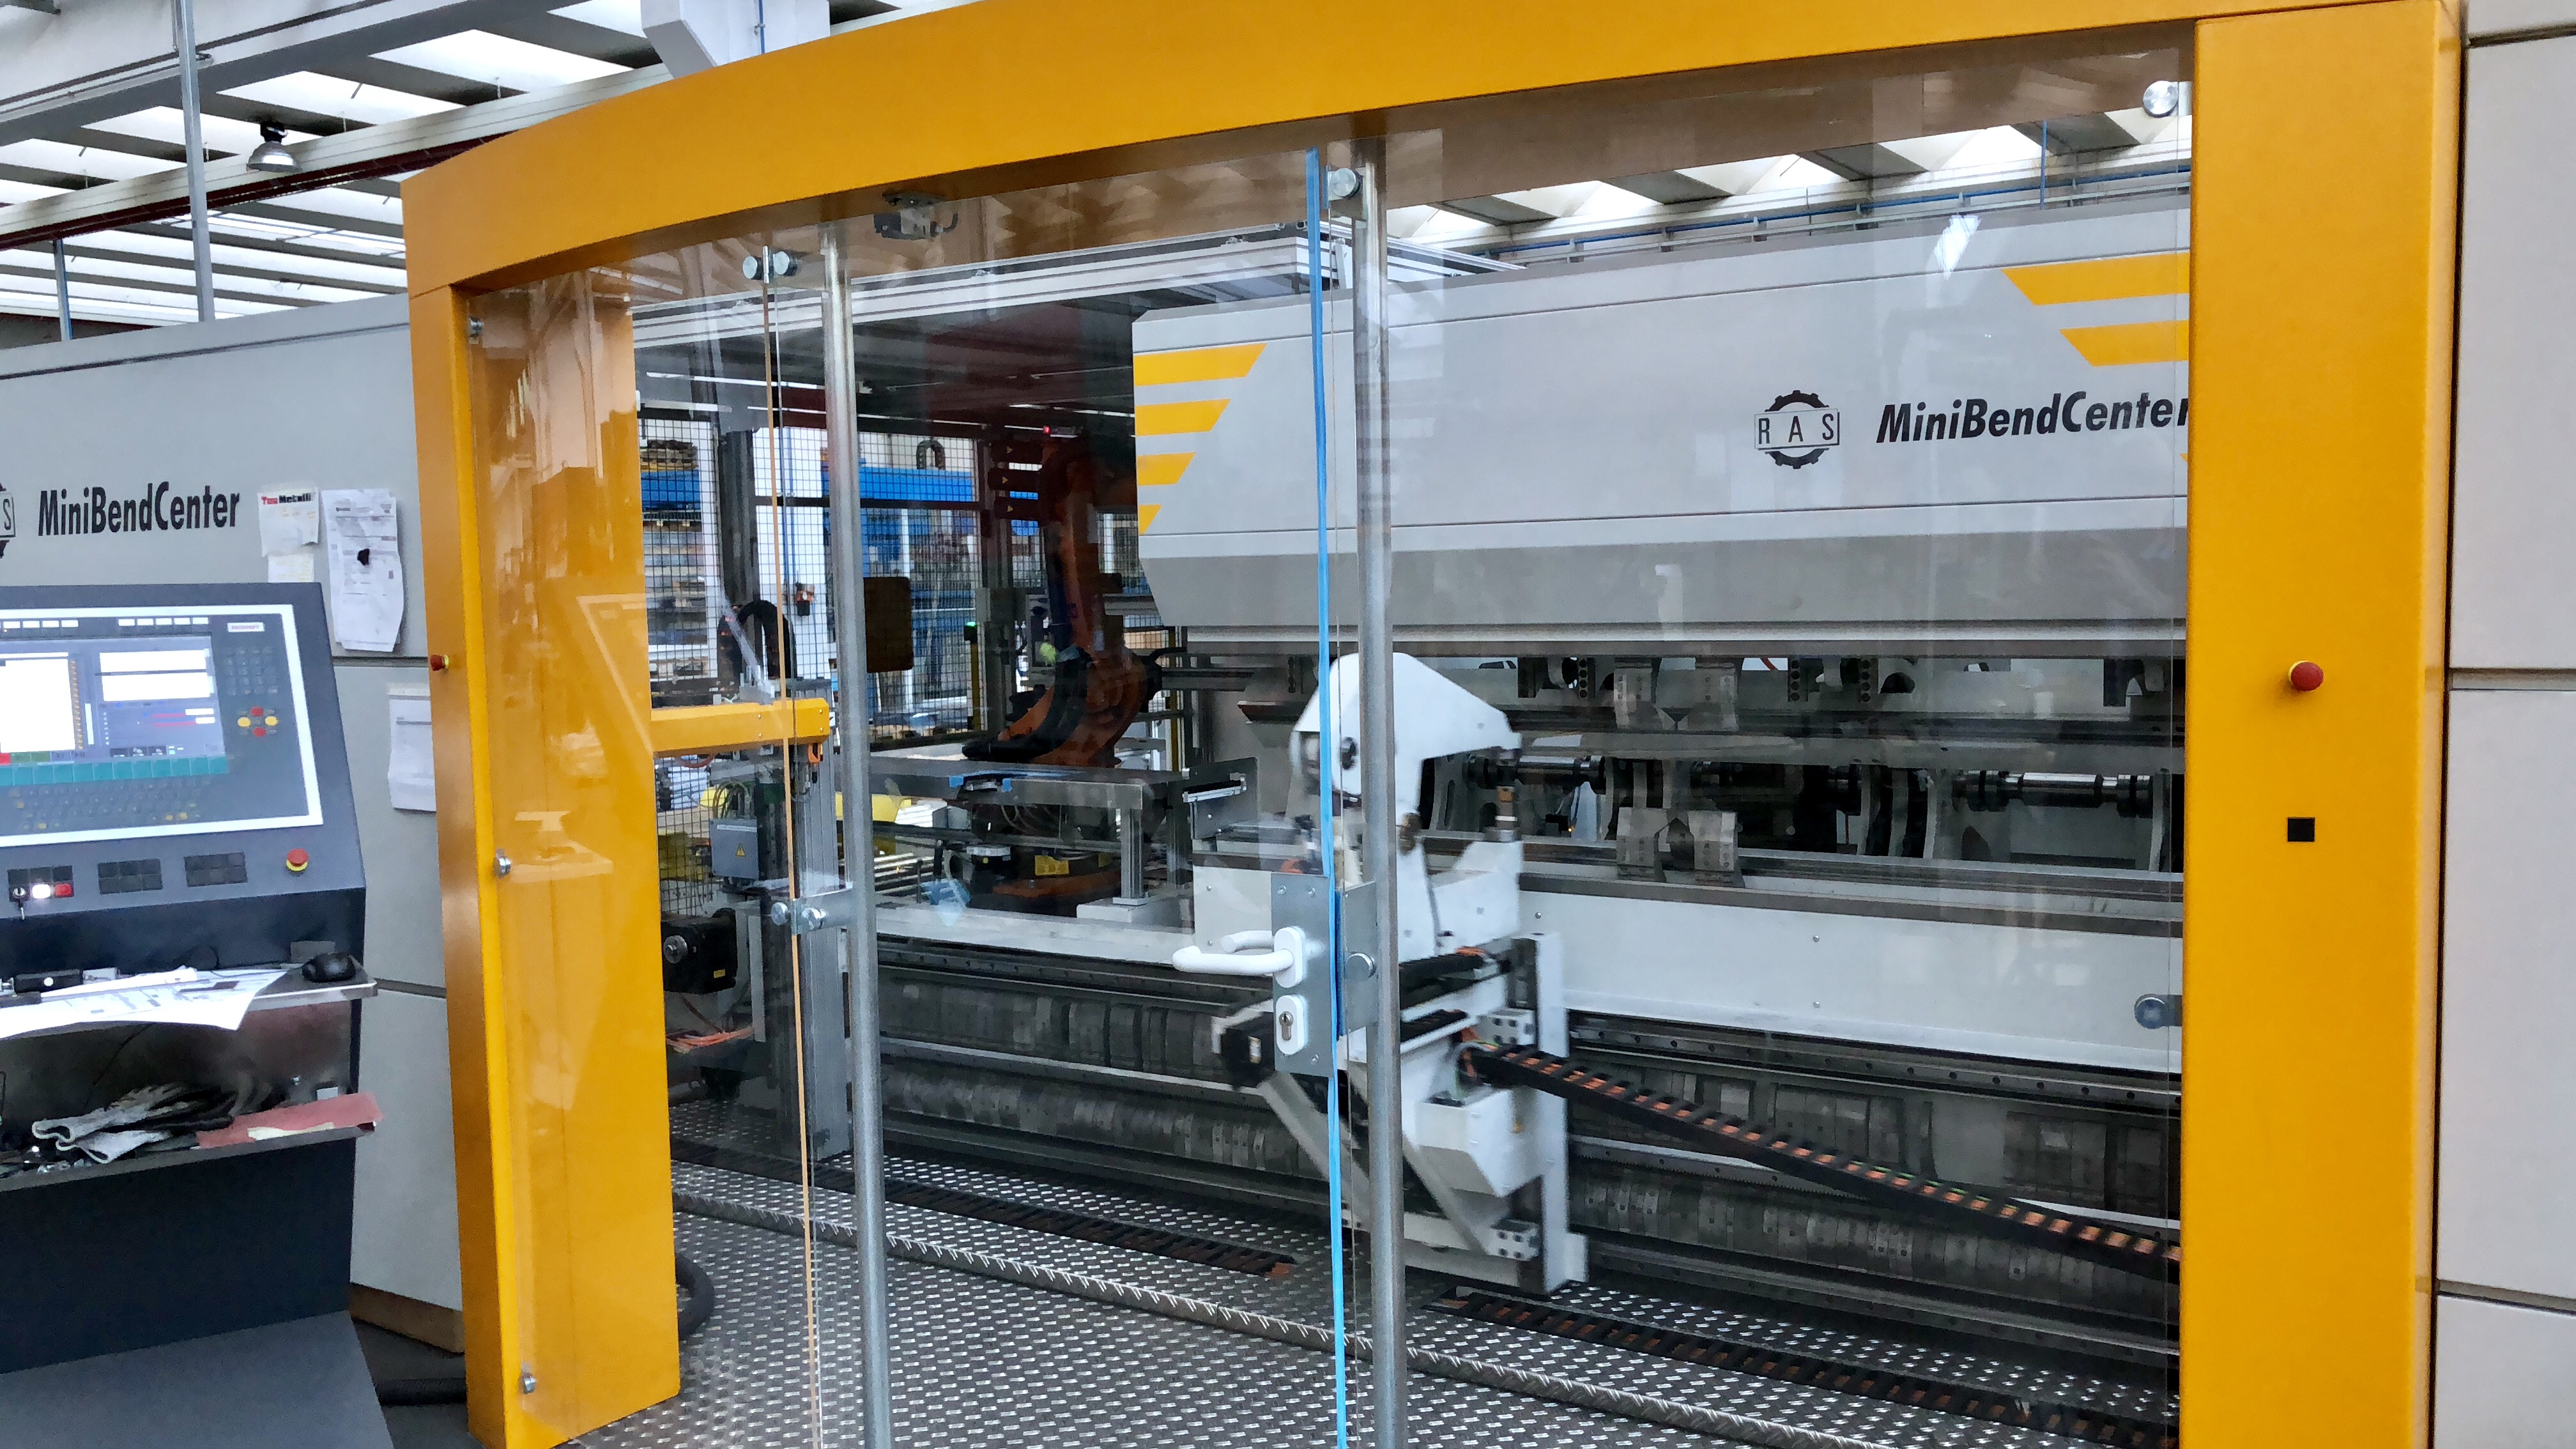 RAS MiniBendCenter: Automatic folding center for small parts